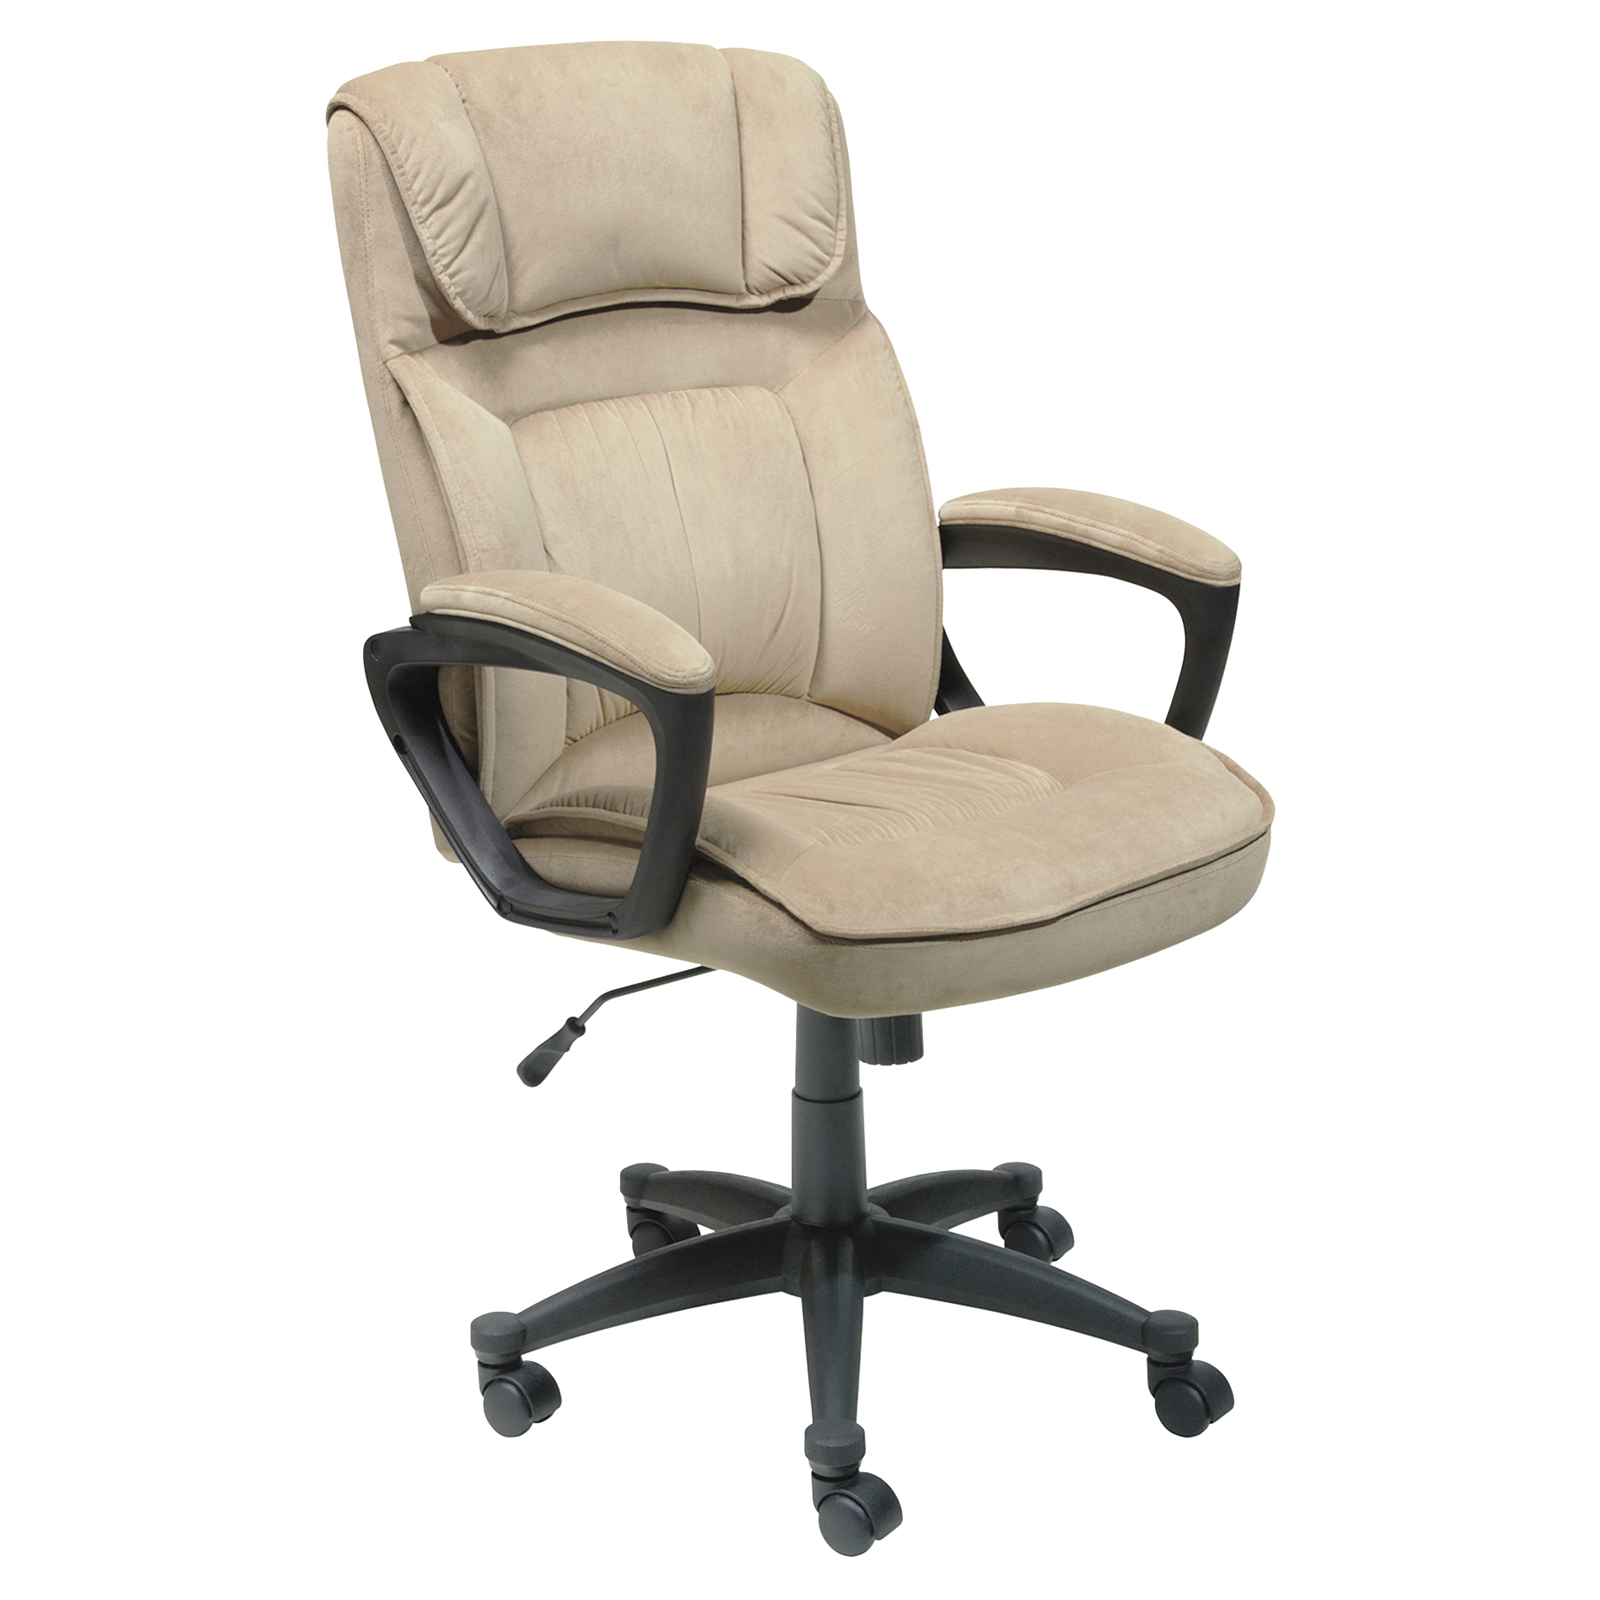 Serta Microfiber Executive fice Chair Light Beige